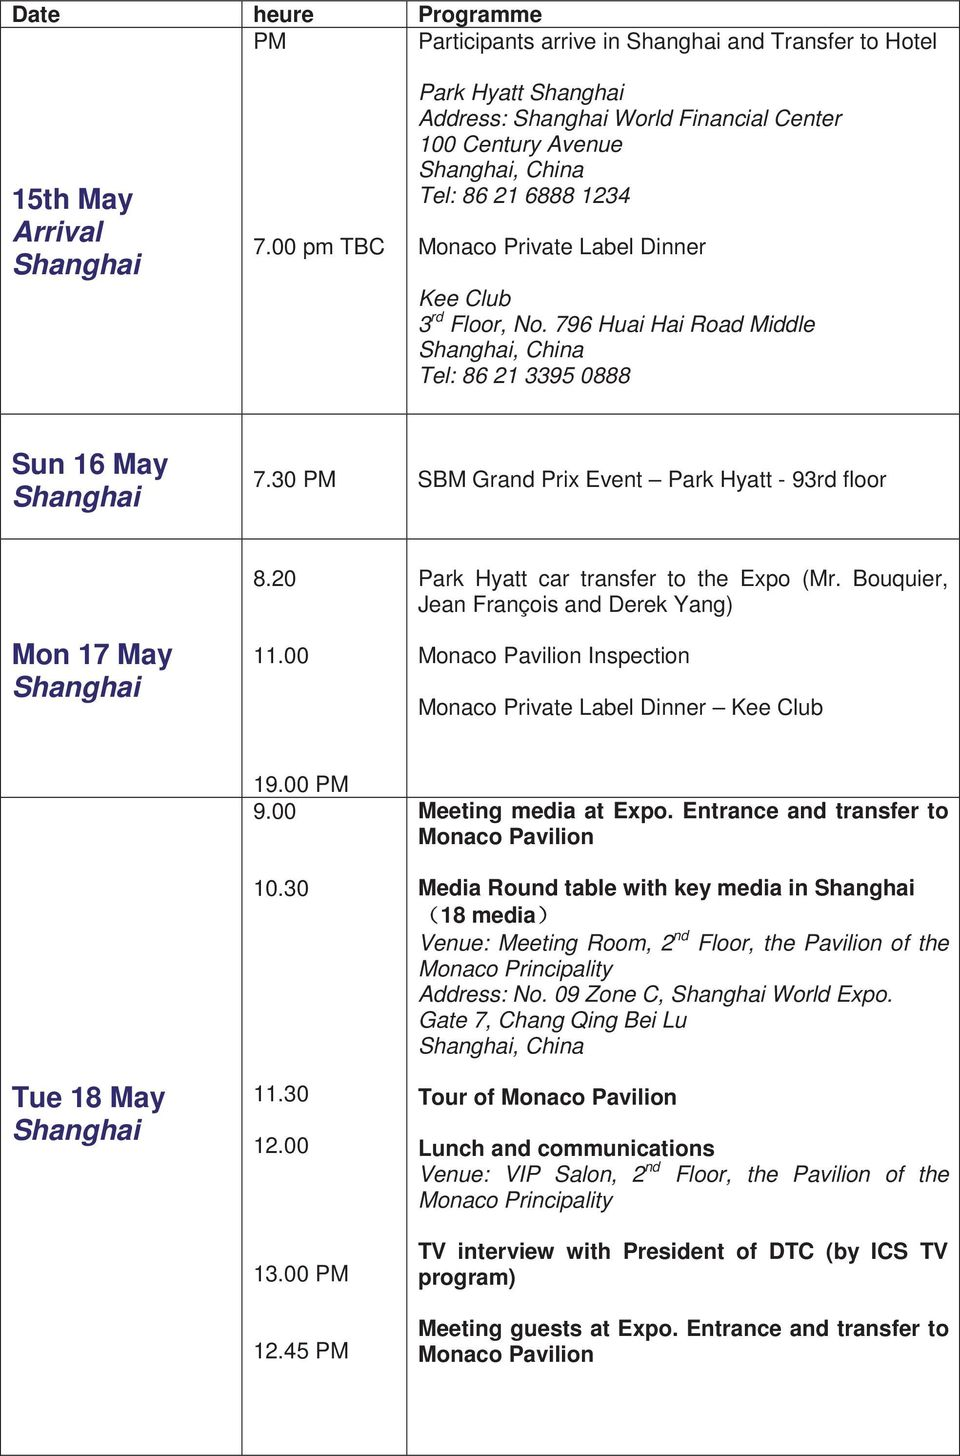 796 Huai Hai Road Middle Shanghai, China Tel: 86 21 3395 0888 Sun 16 May Shanghai 7.30 PM SBM Grand Prix Event Park Hyatt - 93rd floor Mon 17 May Shanghai 8.20 11.